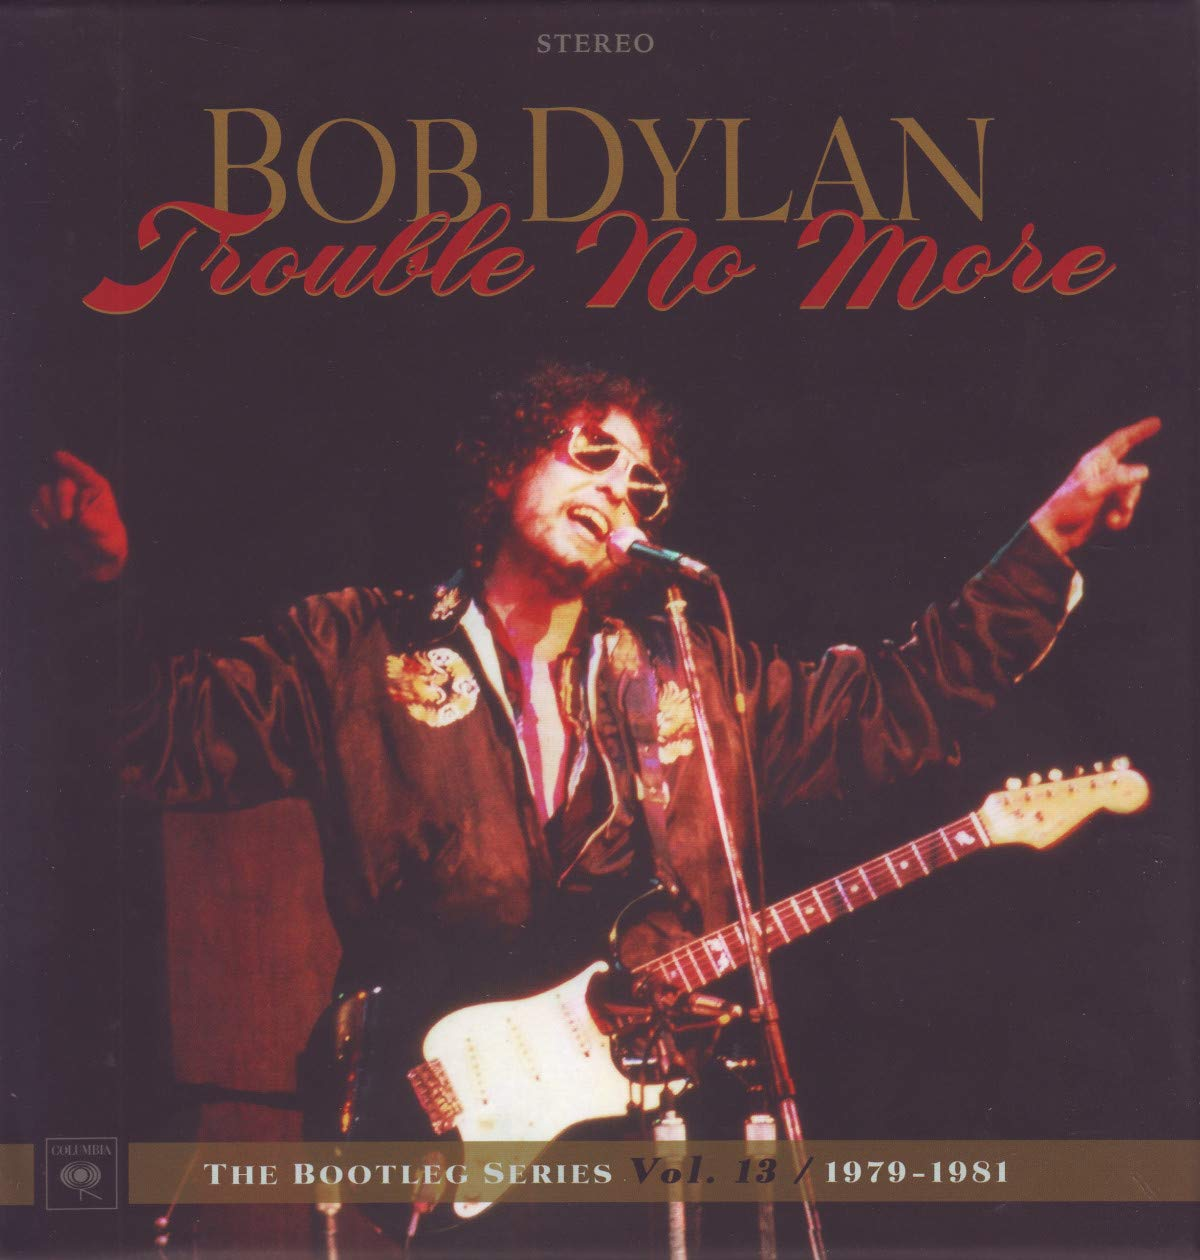 Bob Dylan - Trouble No More: The Bootleg Series Vol. 13 / 1979-1981 (Deluxe  Edition) - Amazon.com Music